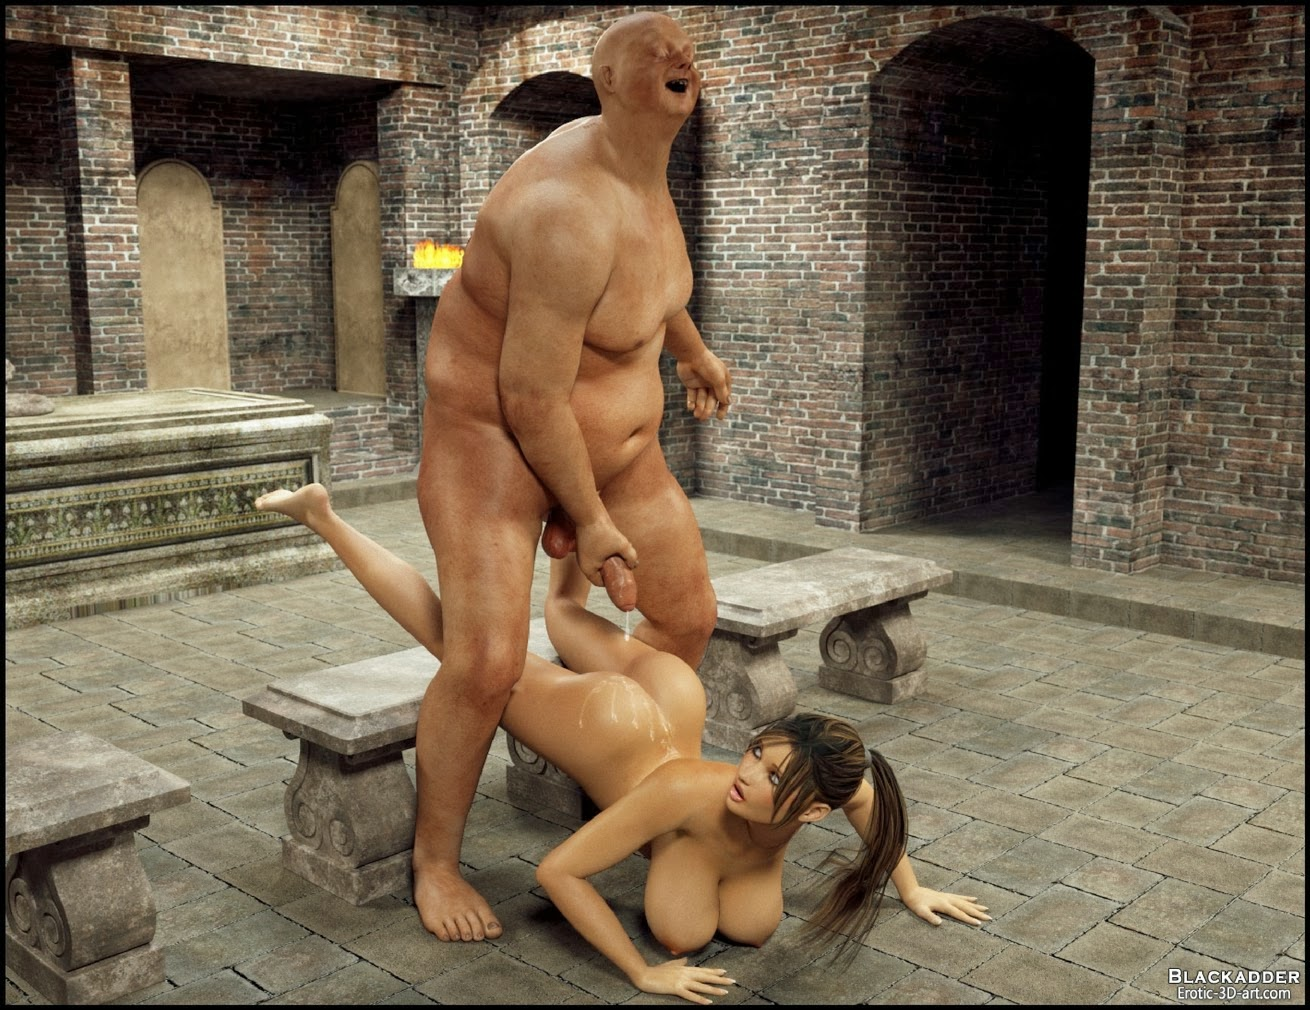 Monster sexhentaiwarrior naked images